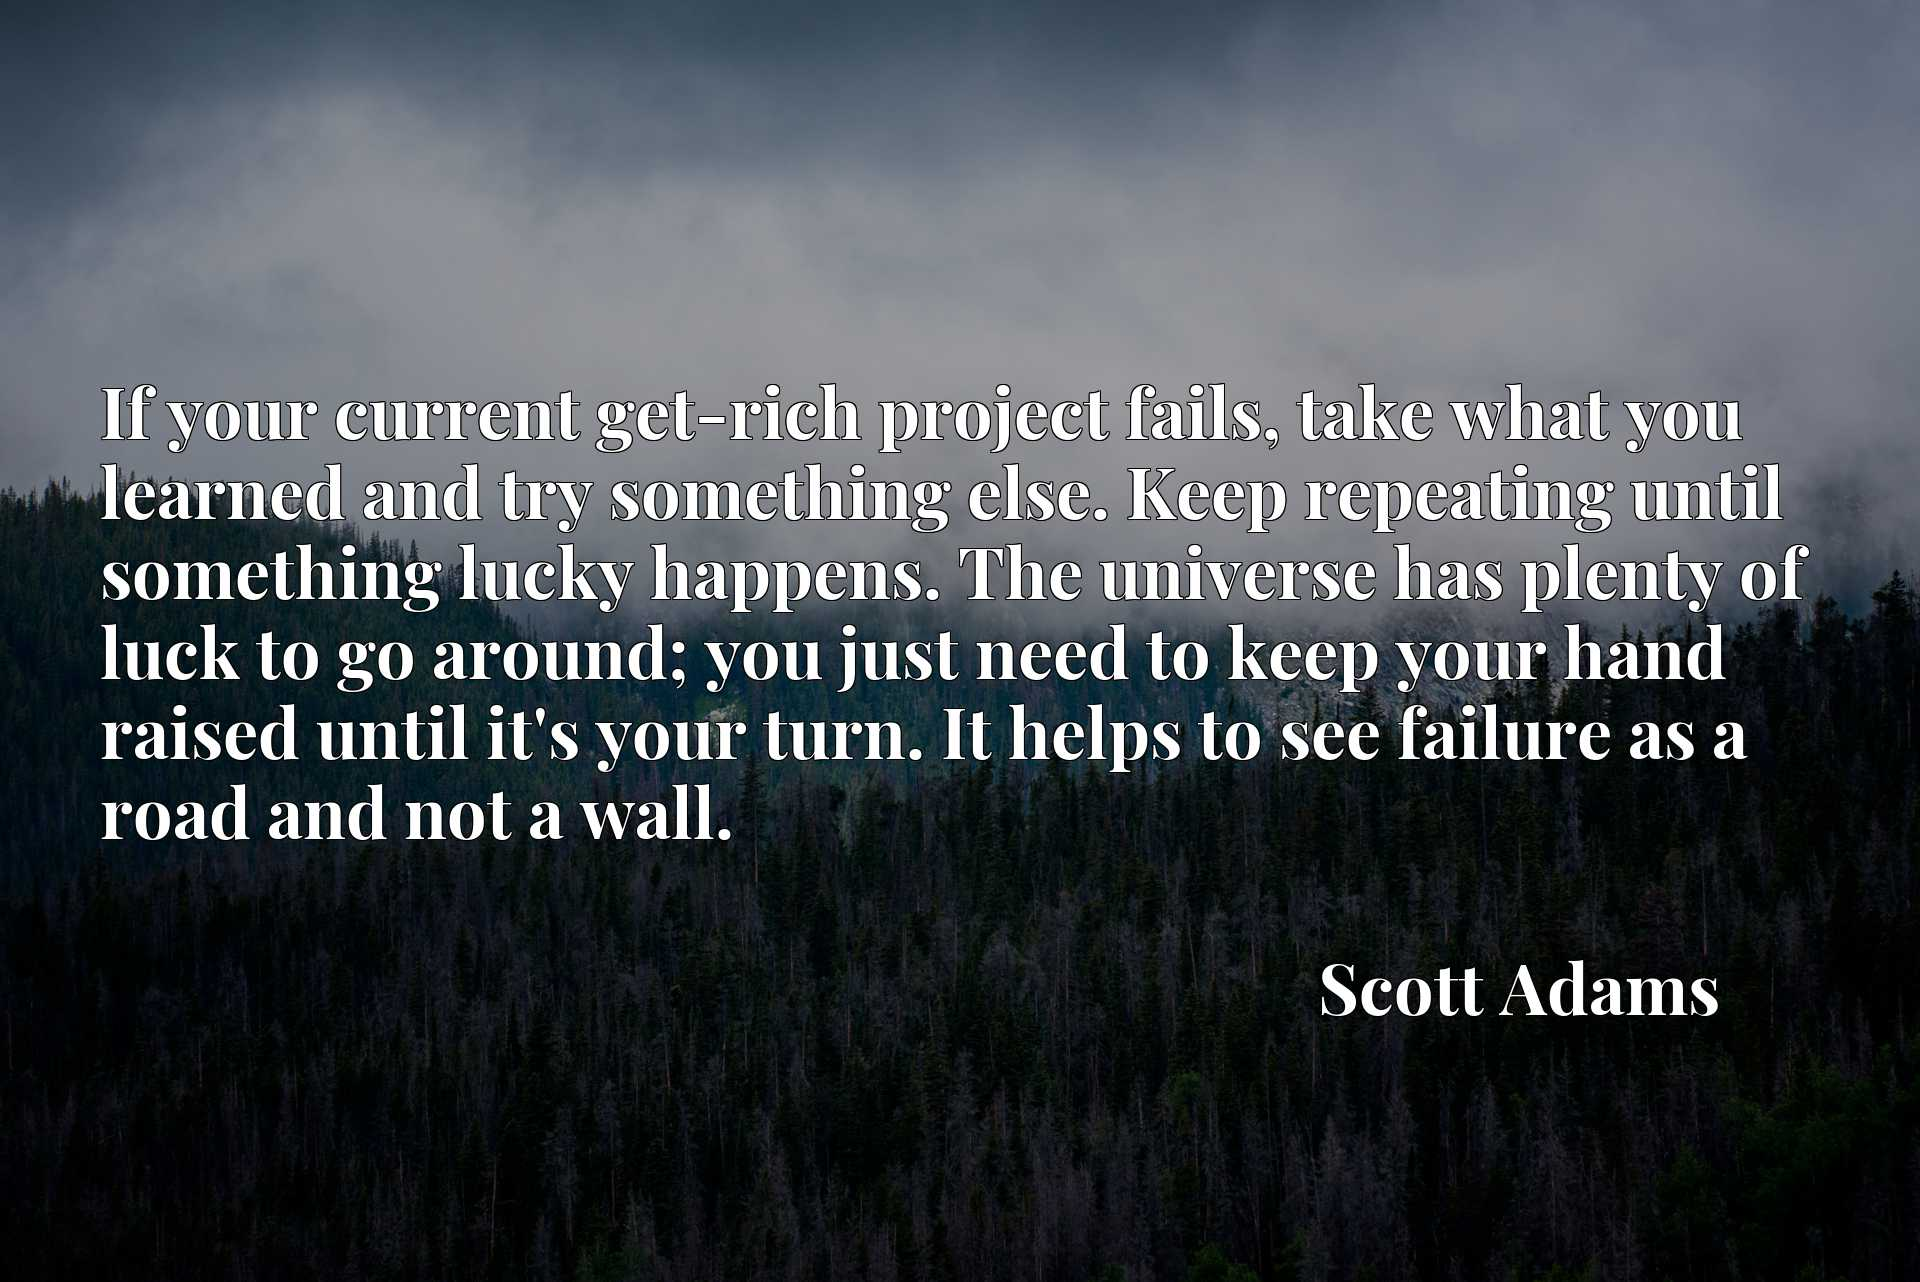 If your current get-rich project fails, take what you learned and try something else. Keep repeating until something lucky happens. The universe has plenty of luck to go around; you just need to keep your hand raised until it's your turn. It helps to see failure as a road and not a wall.